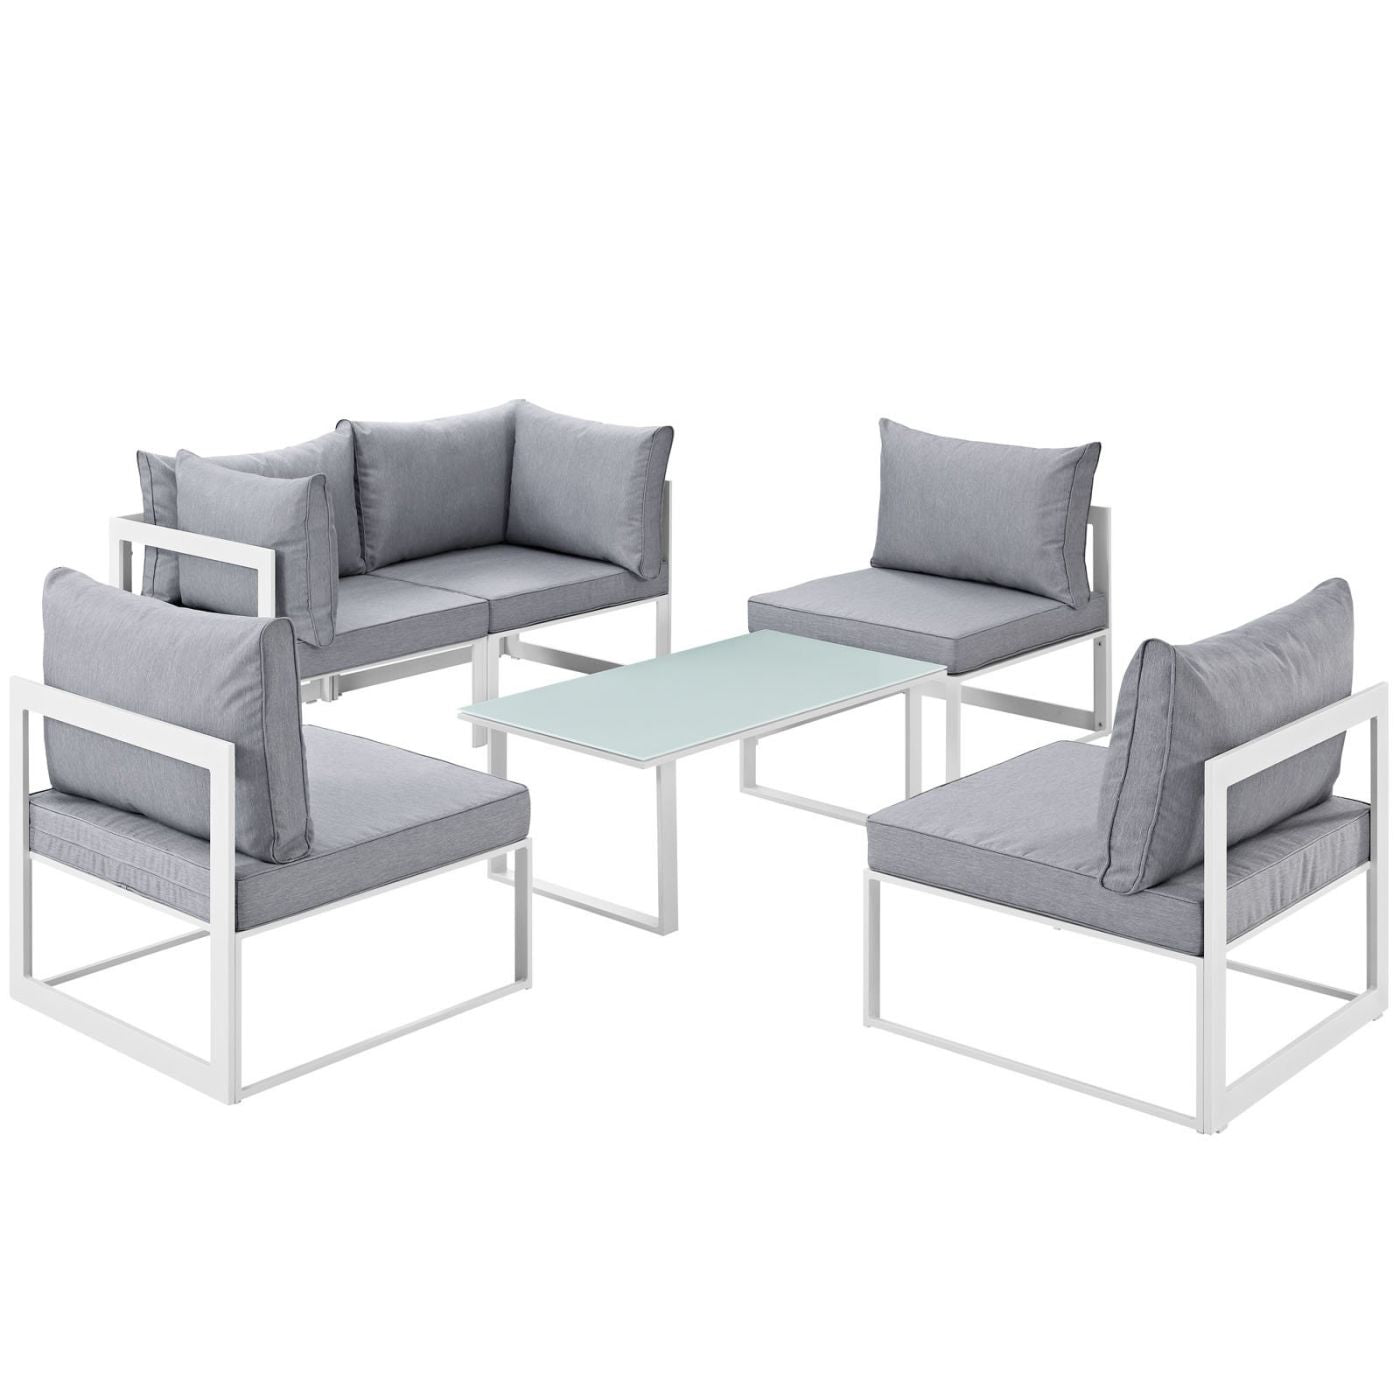 Modway Outdoor Patio Sets on sale. EEI-1726-WHI-GRY-SET Fortuna 6 Piece  Outdoor Patio Sectional Sofa Set only Only $1,319.80 at Contemporary  Furniture ...